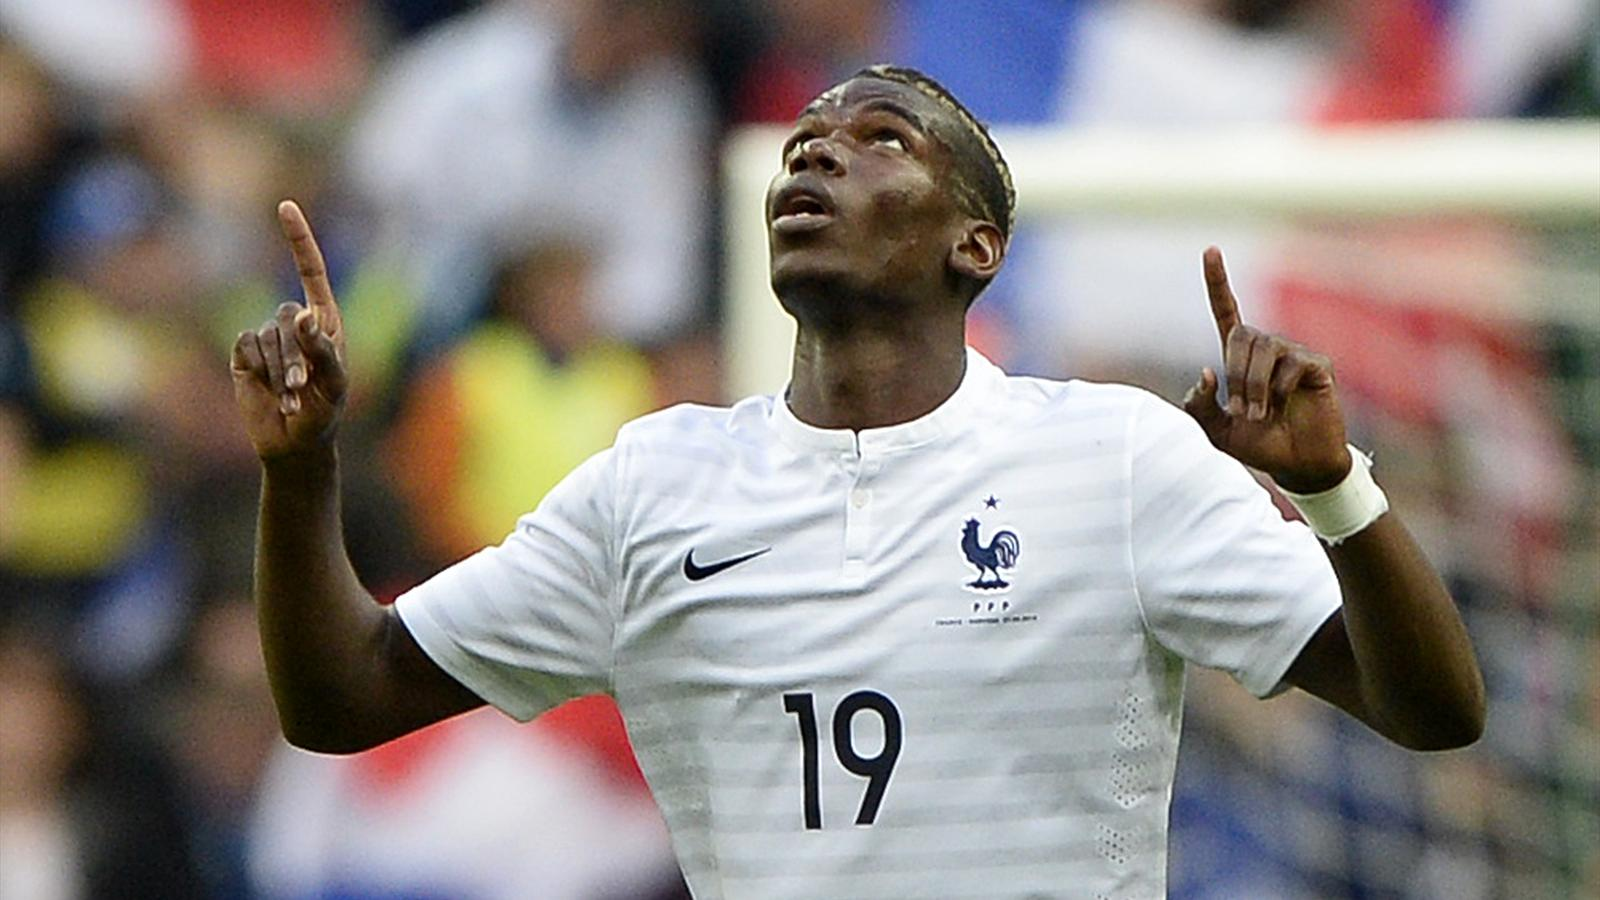 Paul Pogba a inscrit le premier but contre la Norvège (4-0)